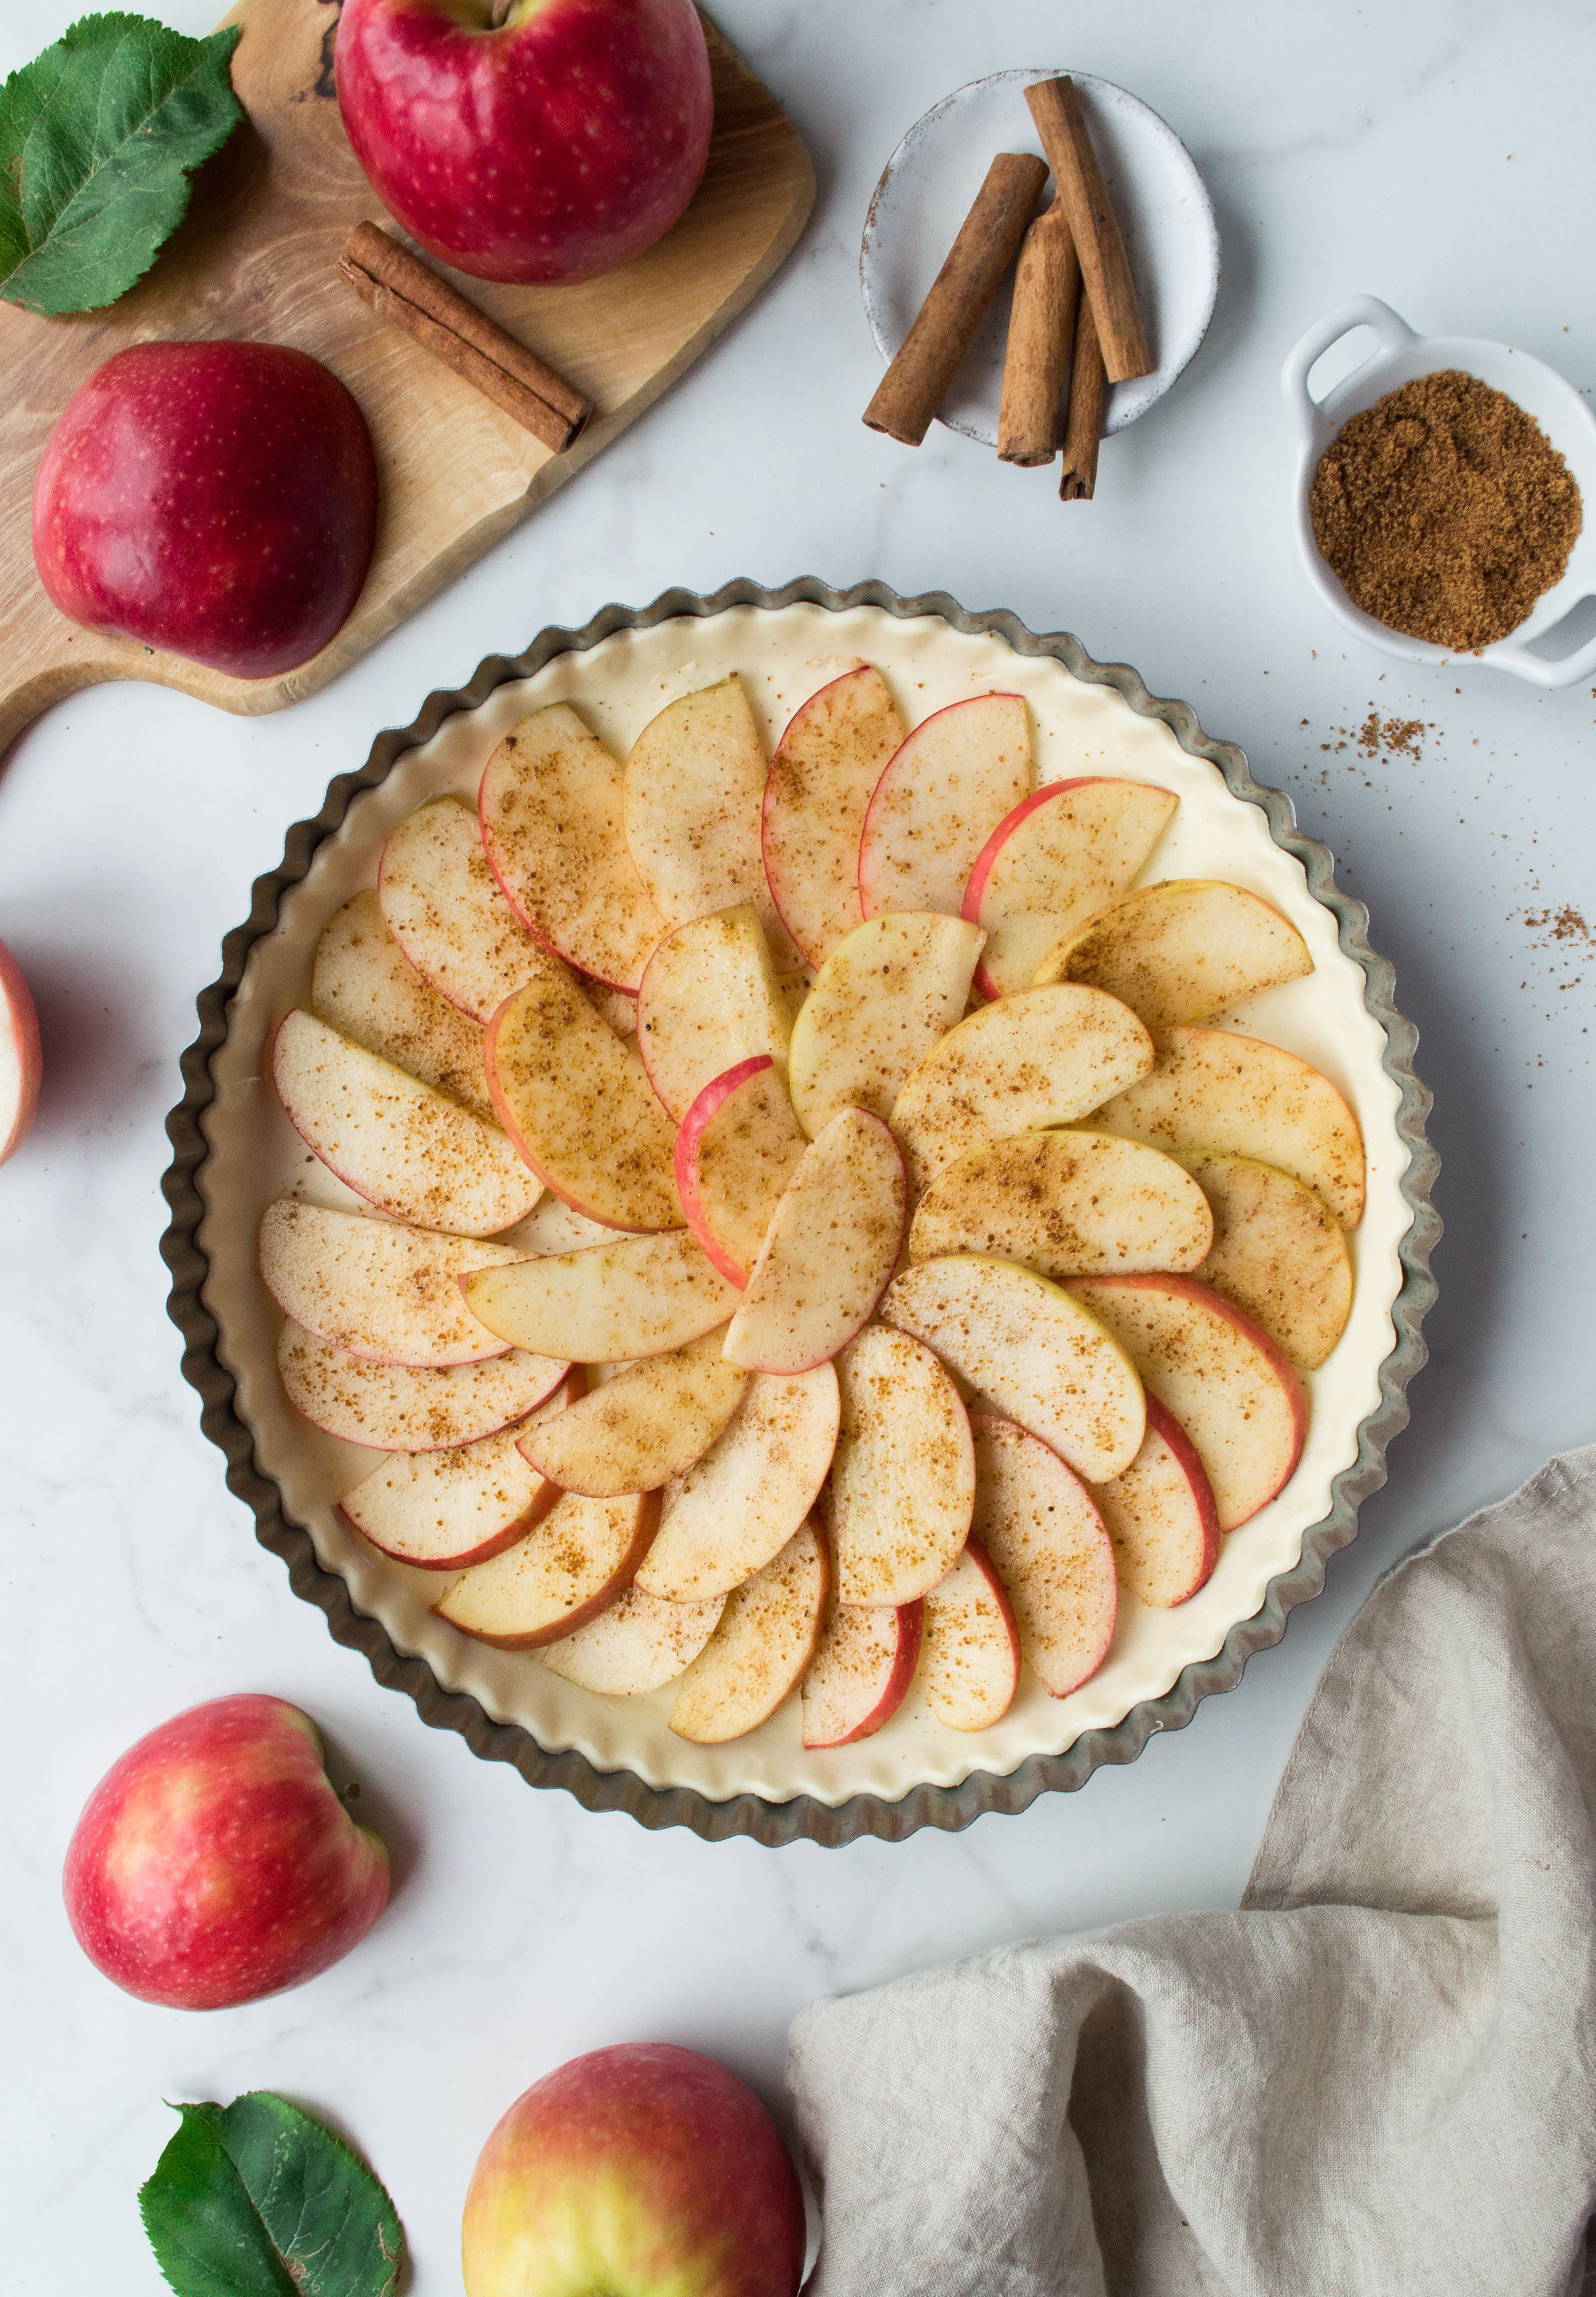 Apple tart before going to the oven